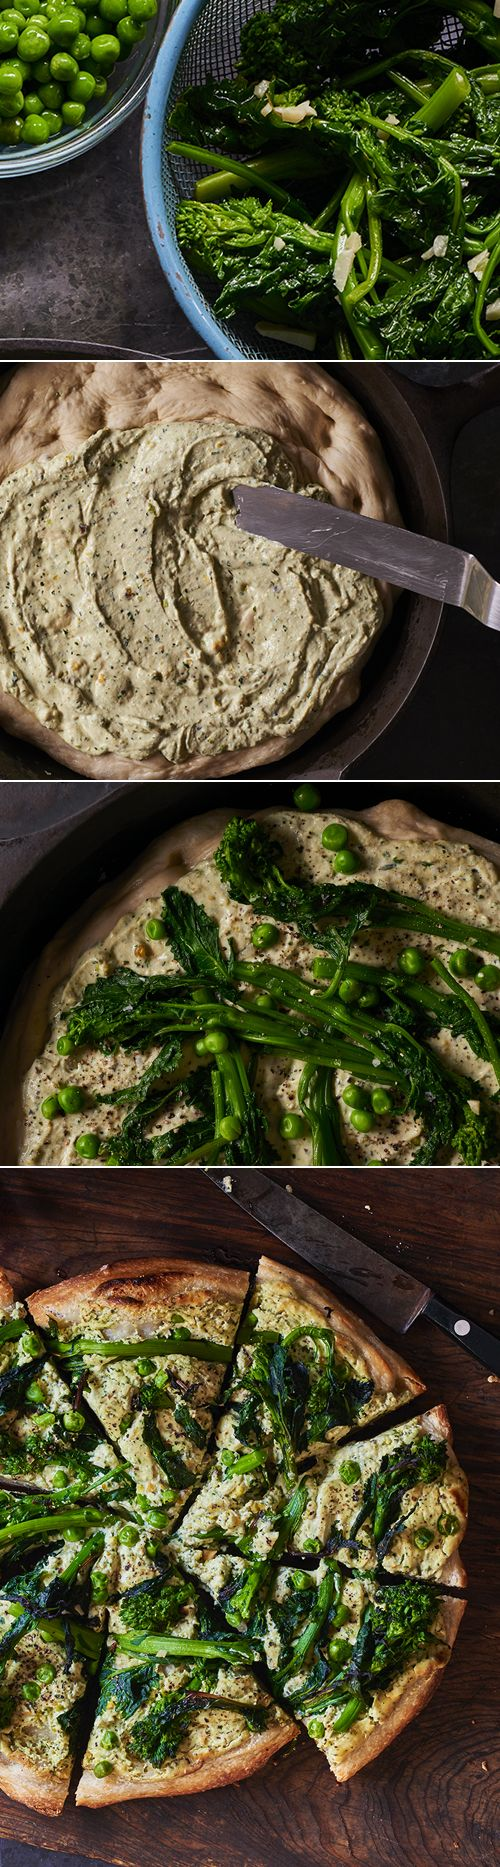 Broccoli Rabe and Green Ricotta Skillet Pizza may soon be your favorite pizza. It is a great vegetarian option and replacement of your favorite take-out.